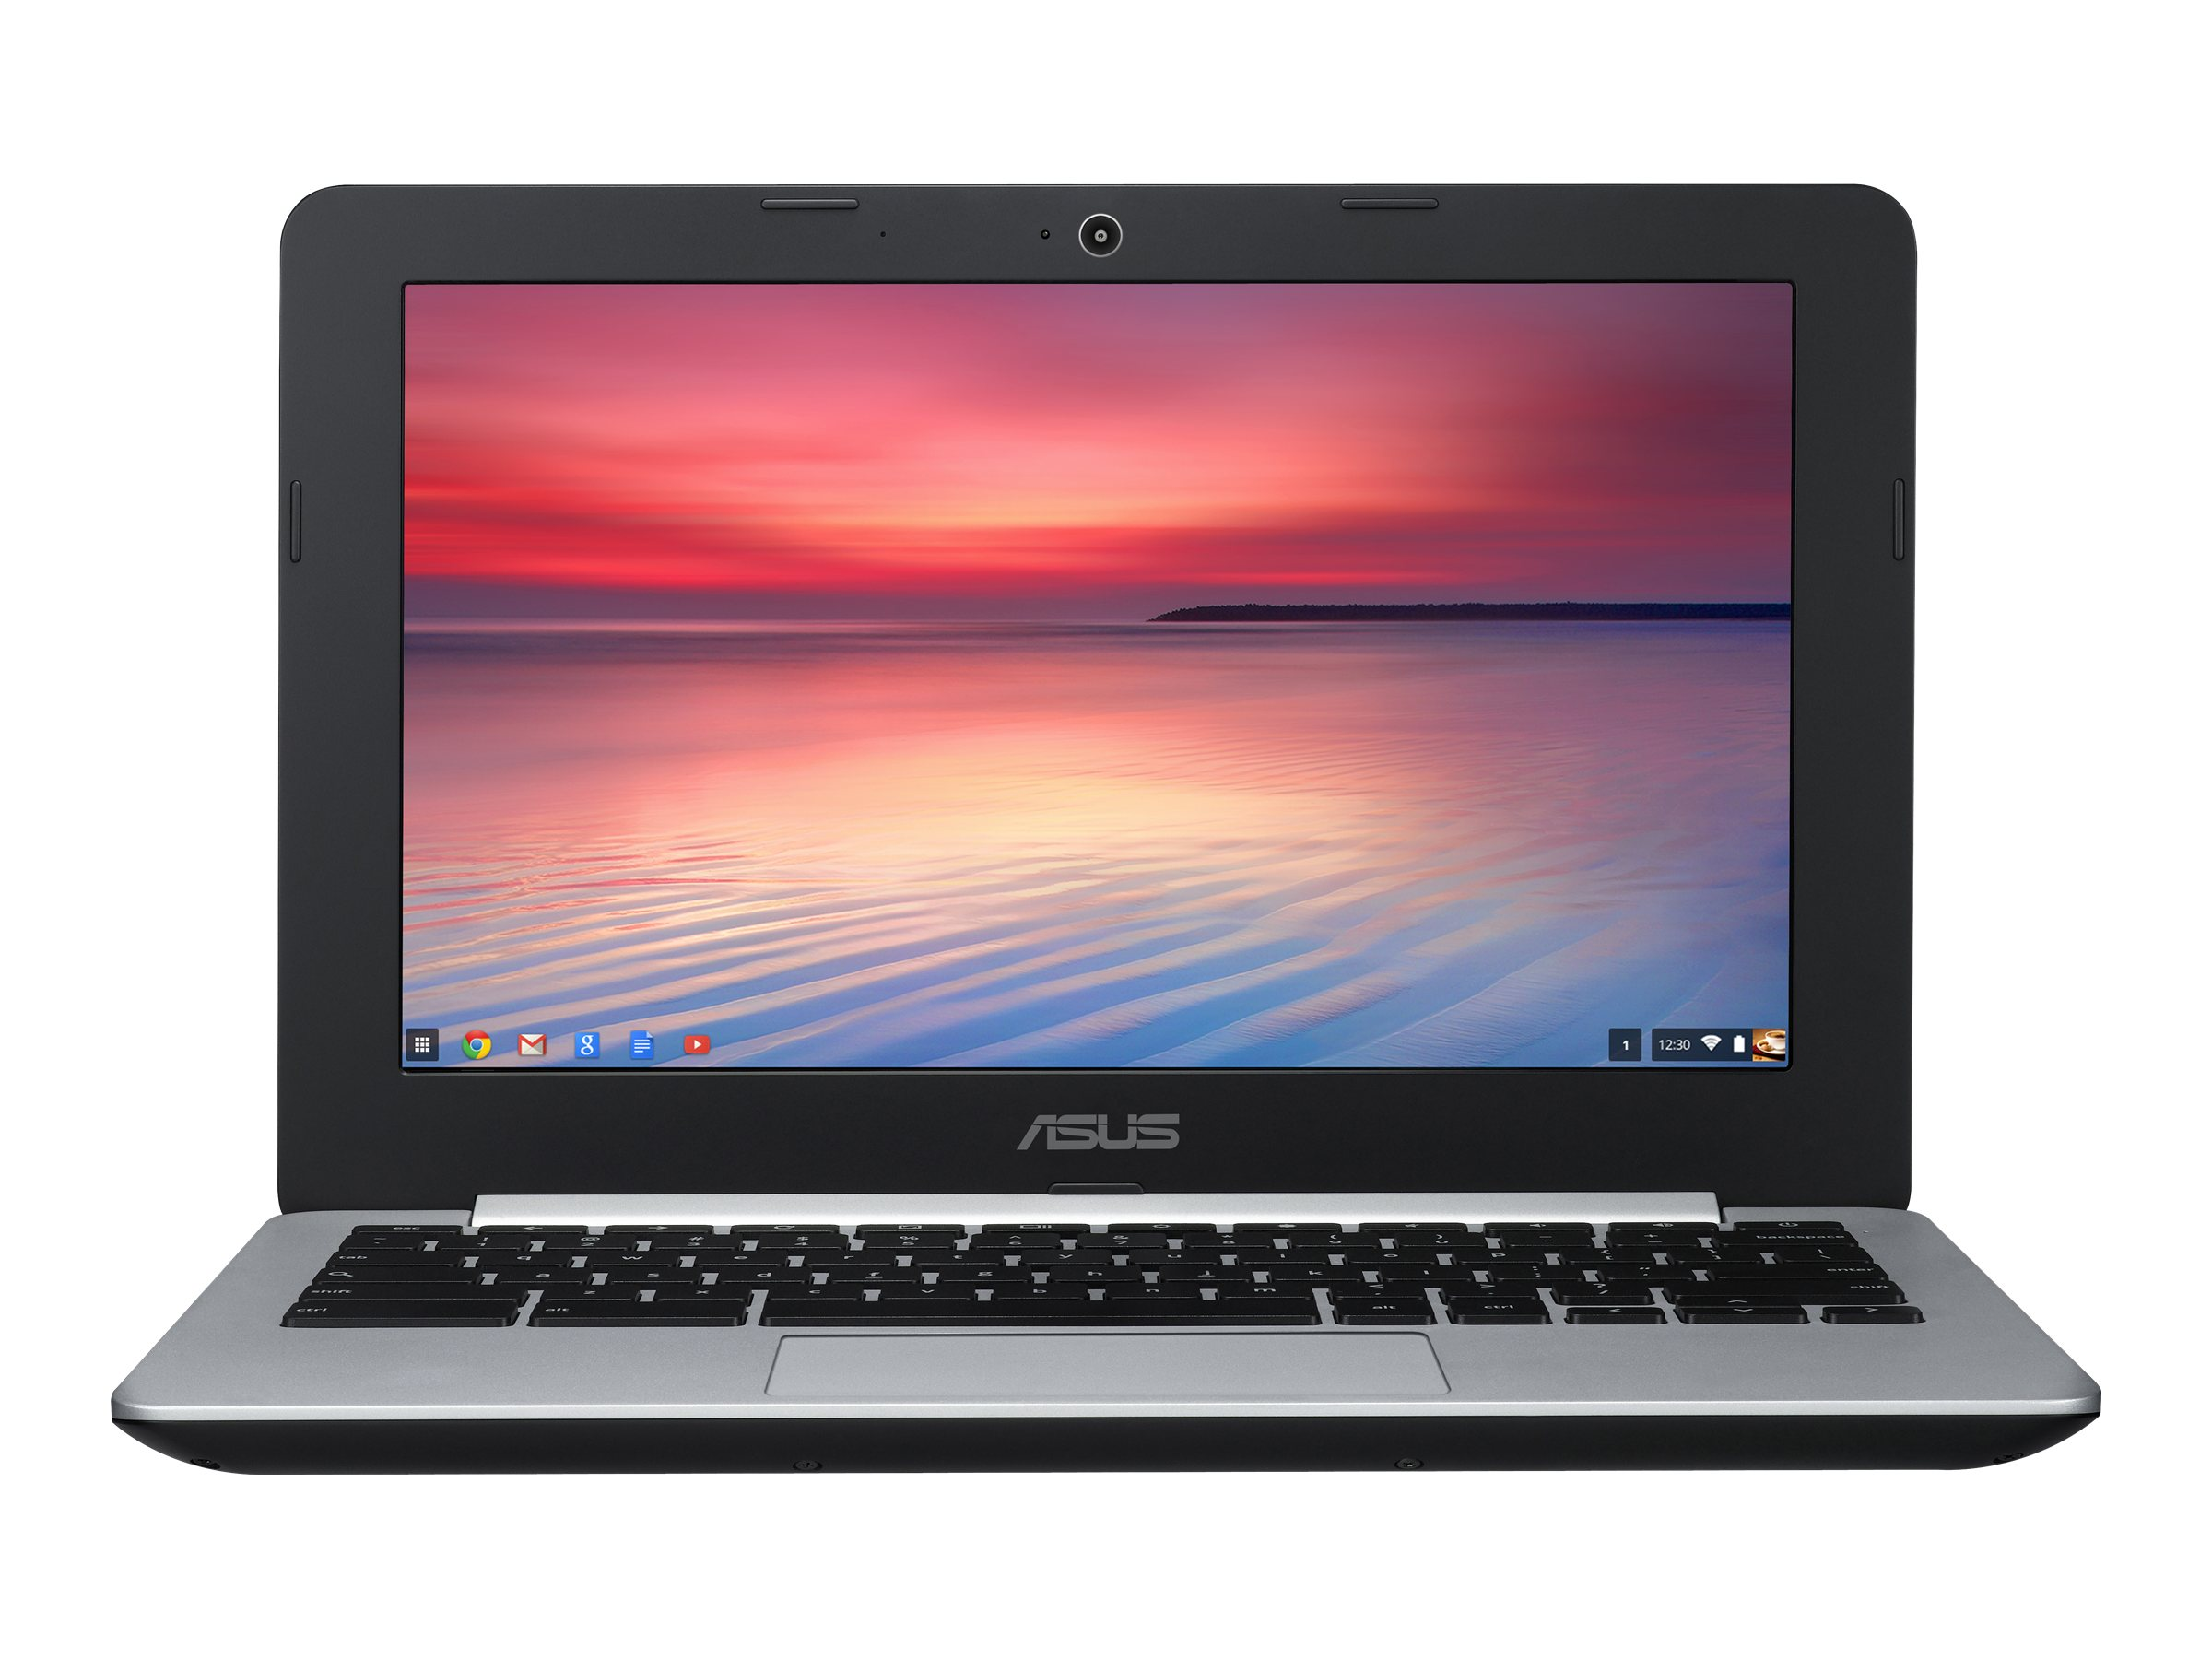 Asus C200MA-DS02 Image 3